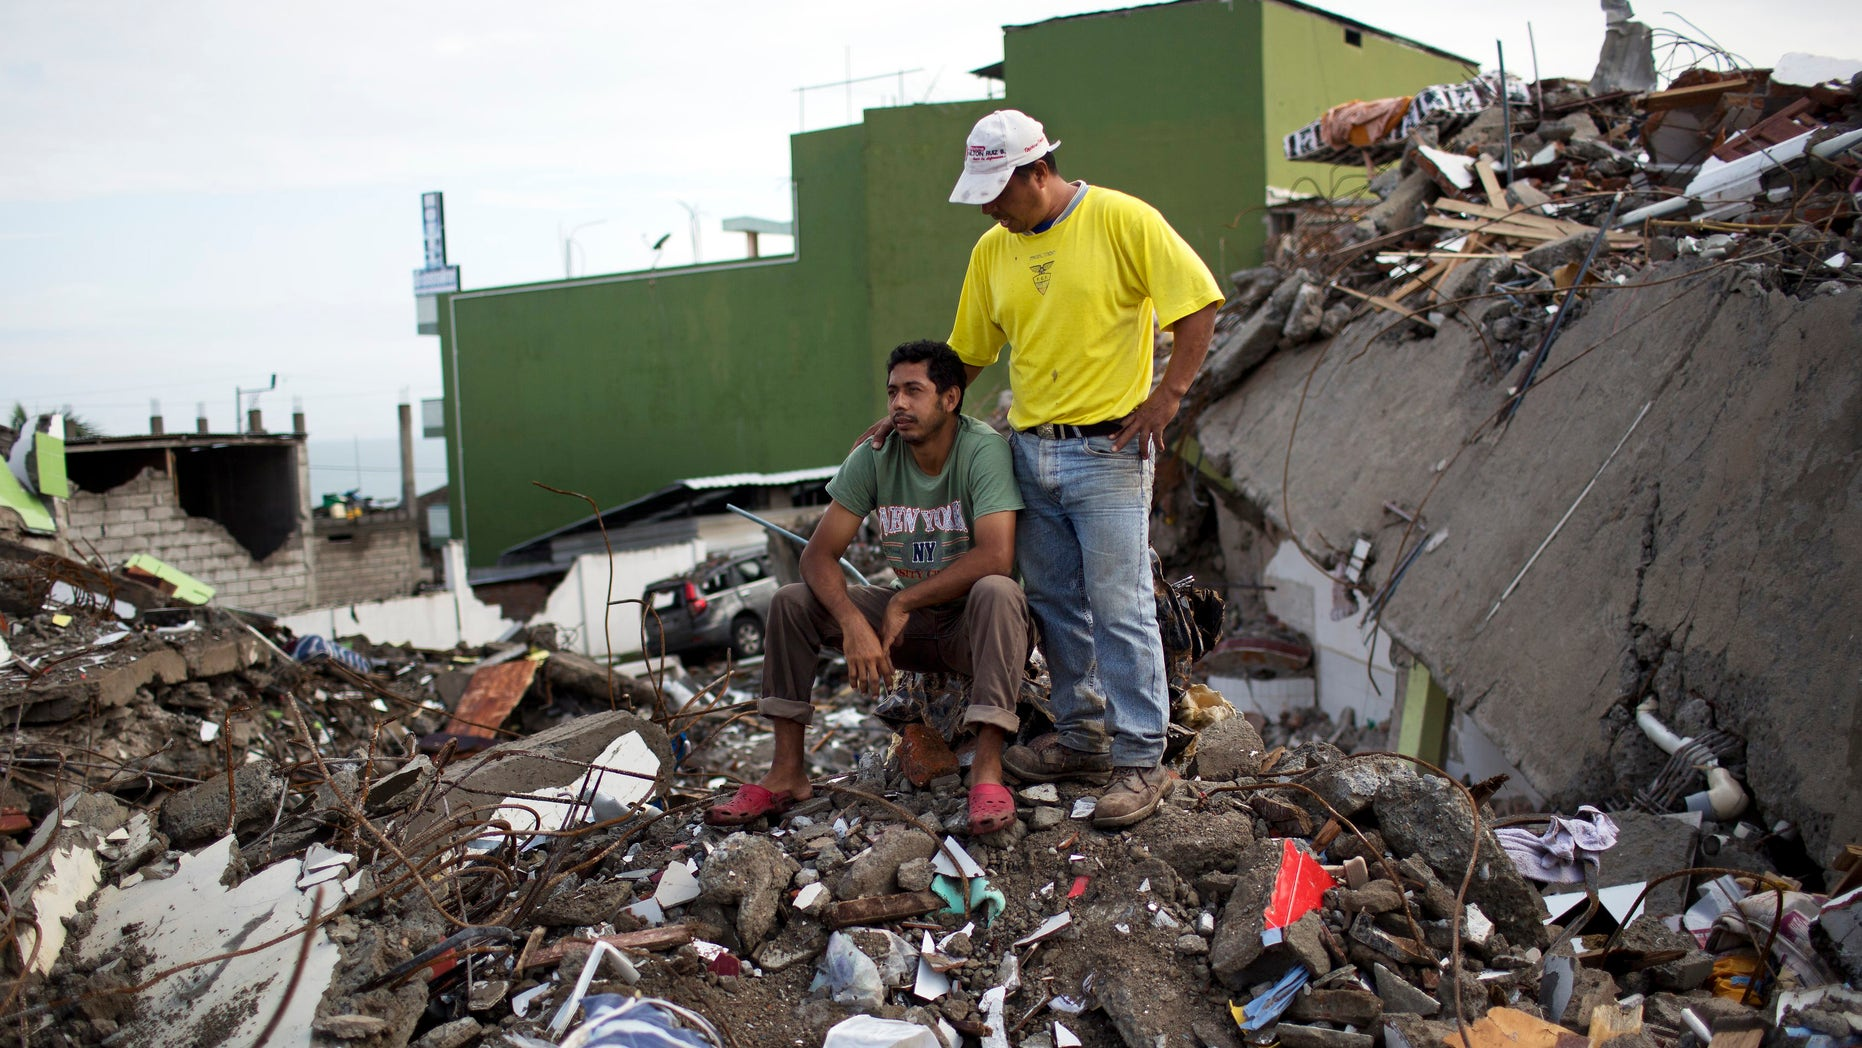 Roberto Ganchoso is comforted by a neighbor as he sits on what's left of his neighborhood, as he watches a bulldozer demolish the hotel next door to his property in Pedernales, Ecuador, Saturday, April 23, 2016. President Rafael Correa has said the earthquake caused $3 billion in damage and warned that the reconstruction effort will take years. His administration is temporarily raising taxes to fund the recovery. (AP Photo/Rodrigo Abd)